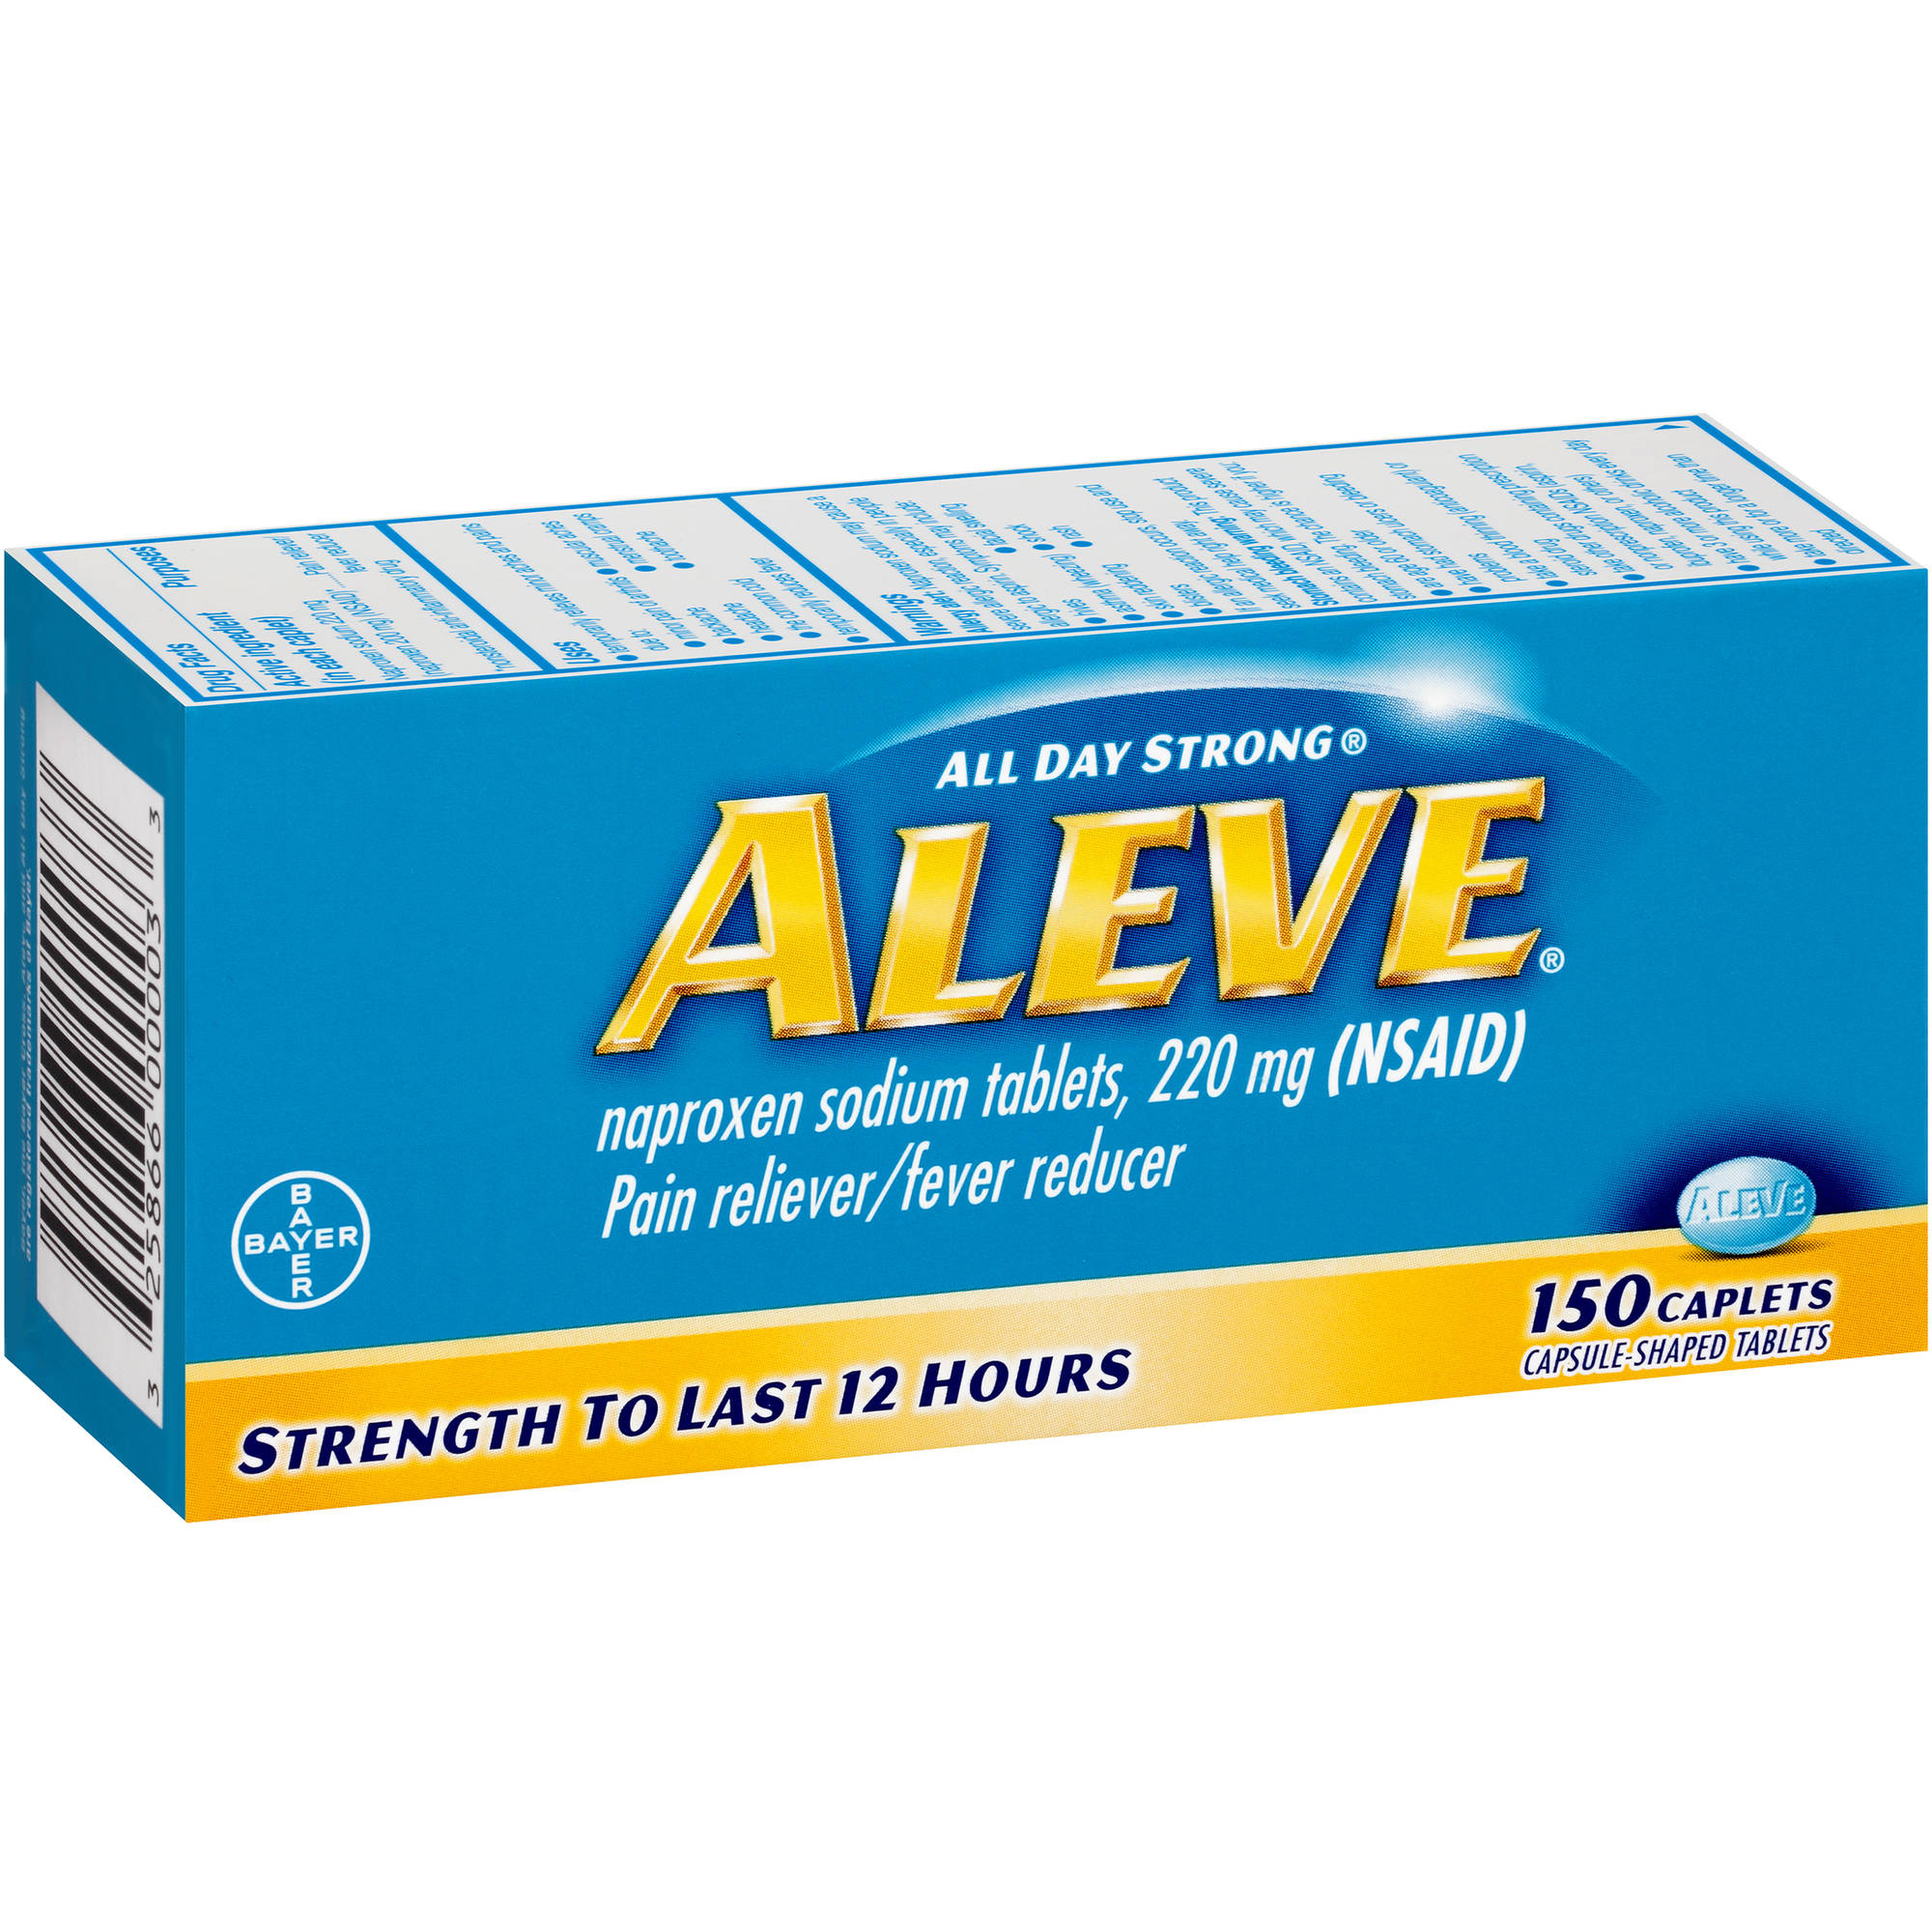 Aleve Pain Reliever/Fever Reducer Naproxen Sodium Caplets, 220mg, 150 count